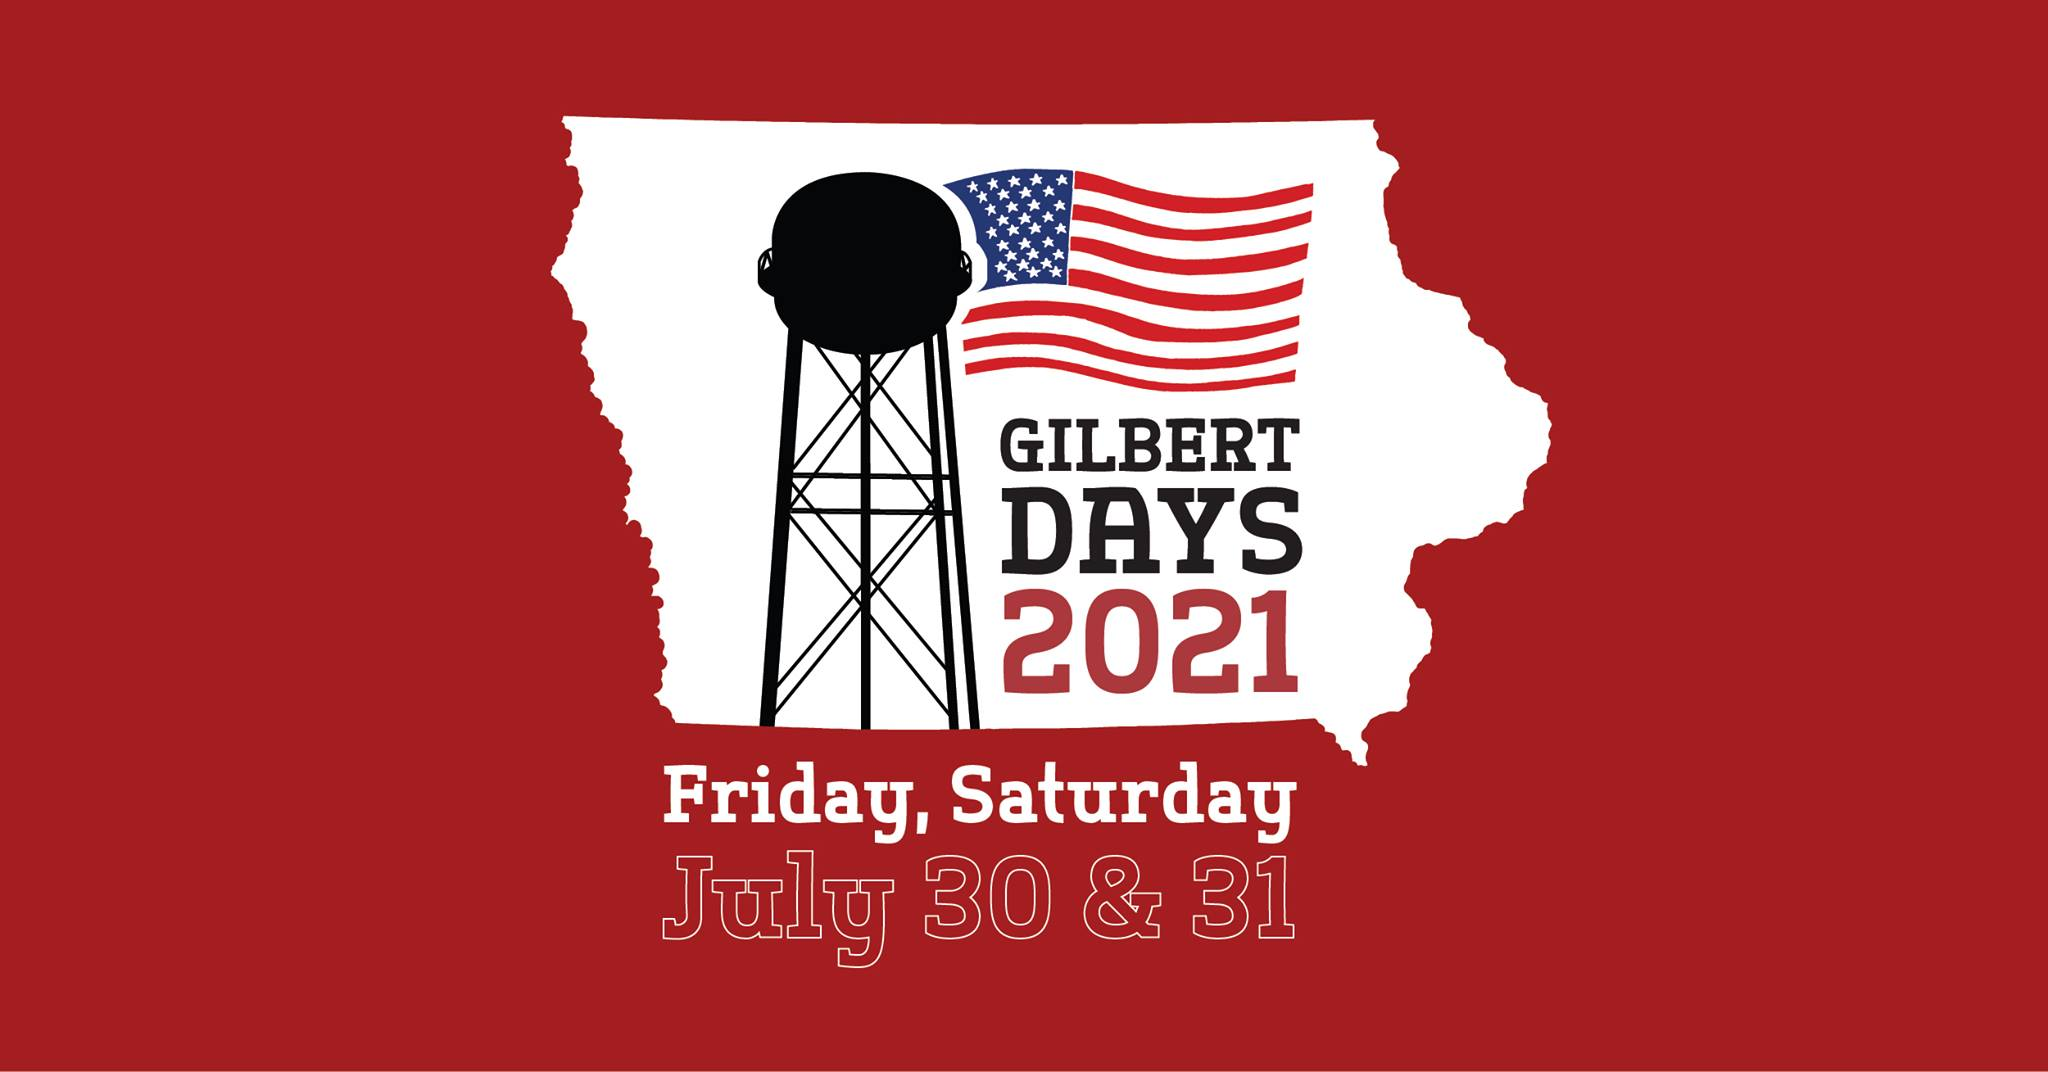 red background, white image of state of iowa with a silhouette of a water tower and american flag.